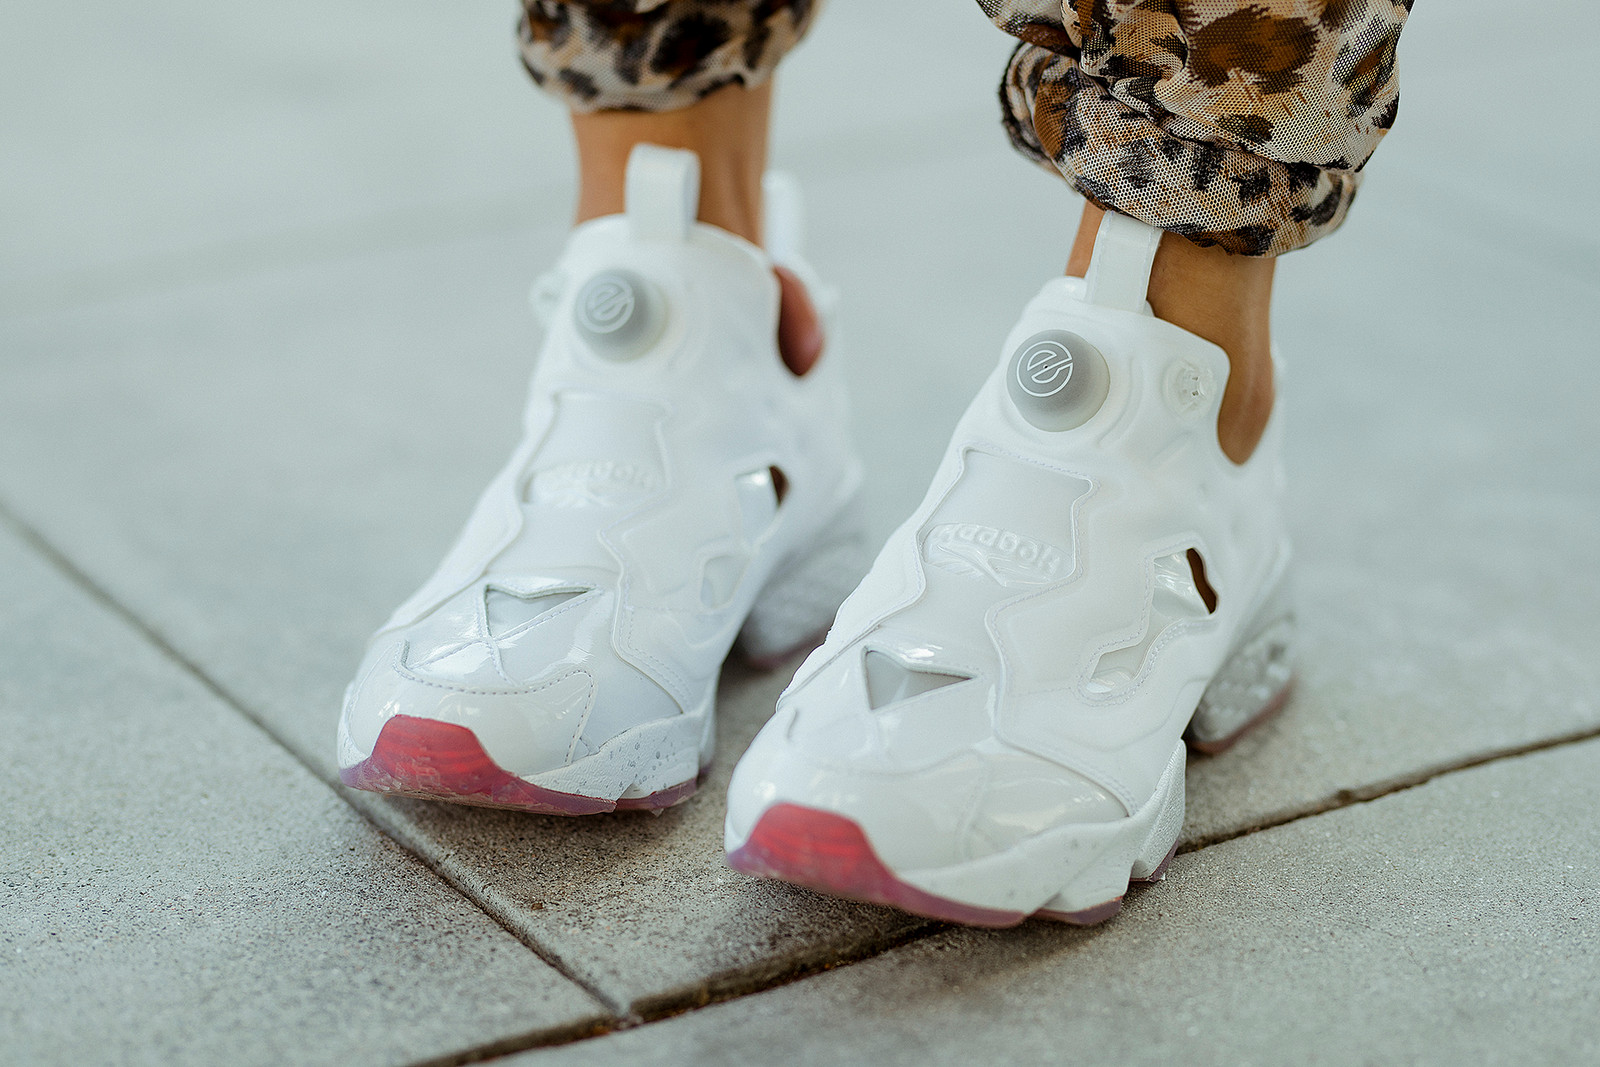 Epitome x Reebok Instapump Fury Sneaker Footwear Shoe Evolution of Woman Female Power Campaign Lookbook Silhouette